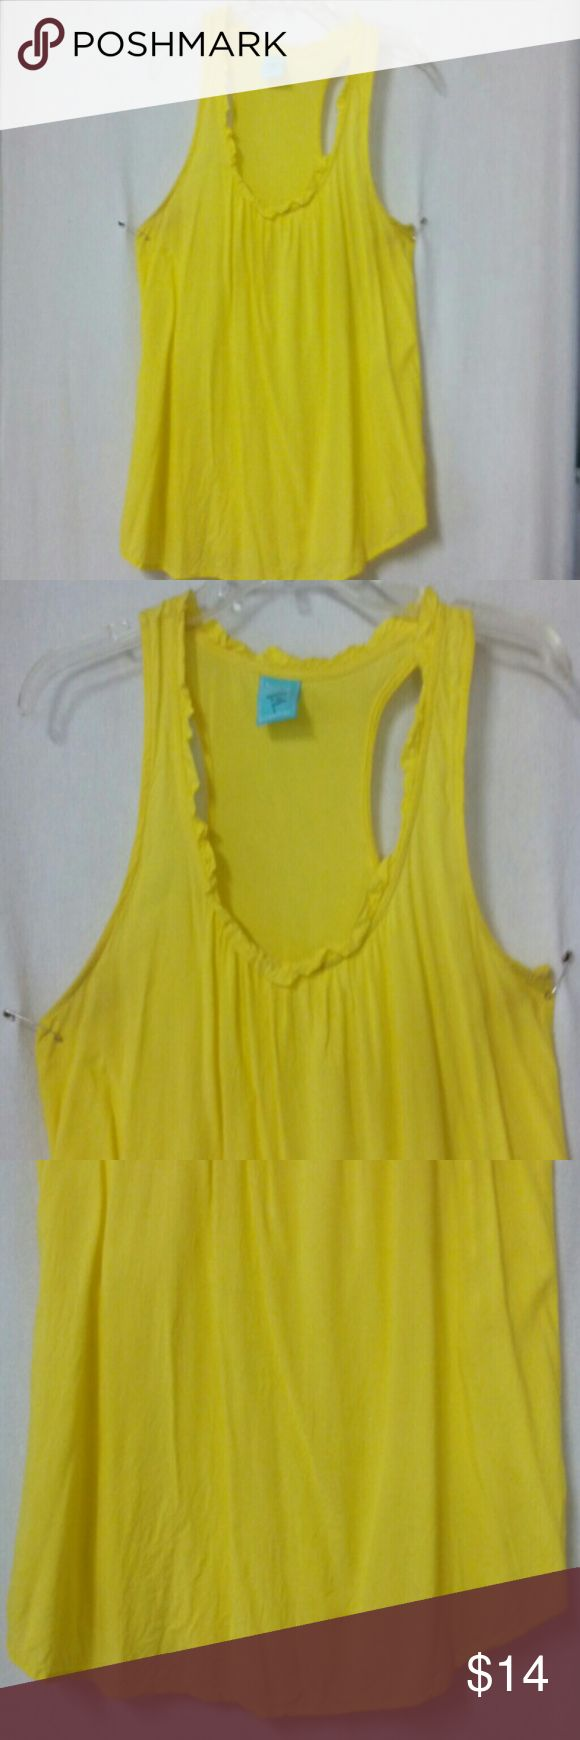 "HIP Happening In THE Present women large tank top Barely worn, racer back, yellow, ruffle trim, rayon, chest 40"", length 27"" Hip Tops Tank Tops"